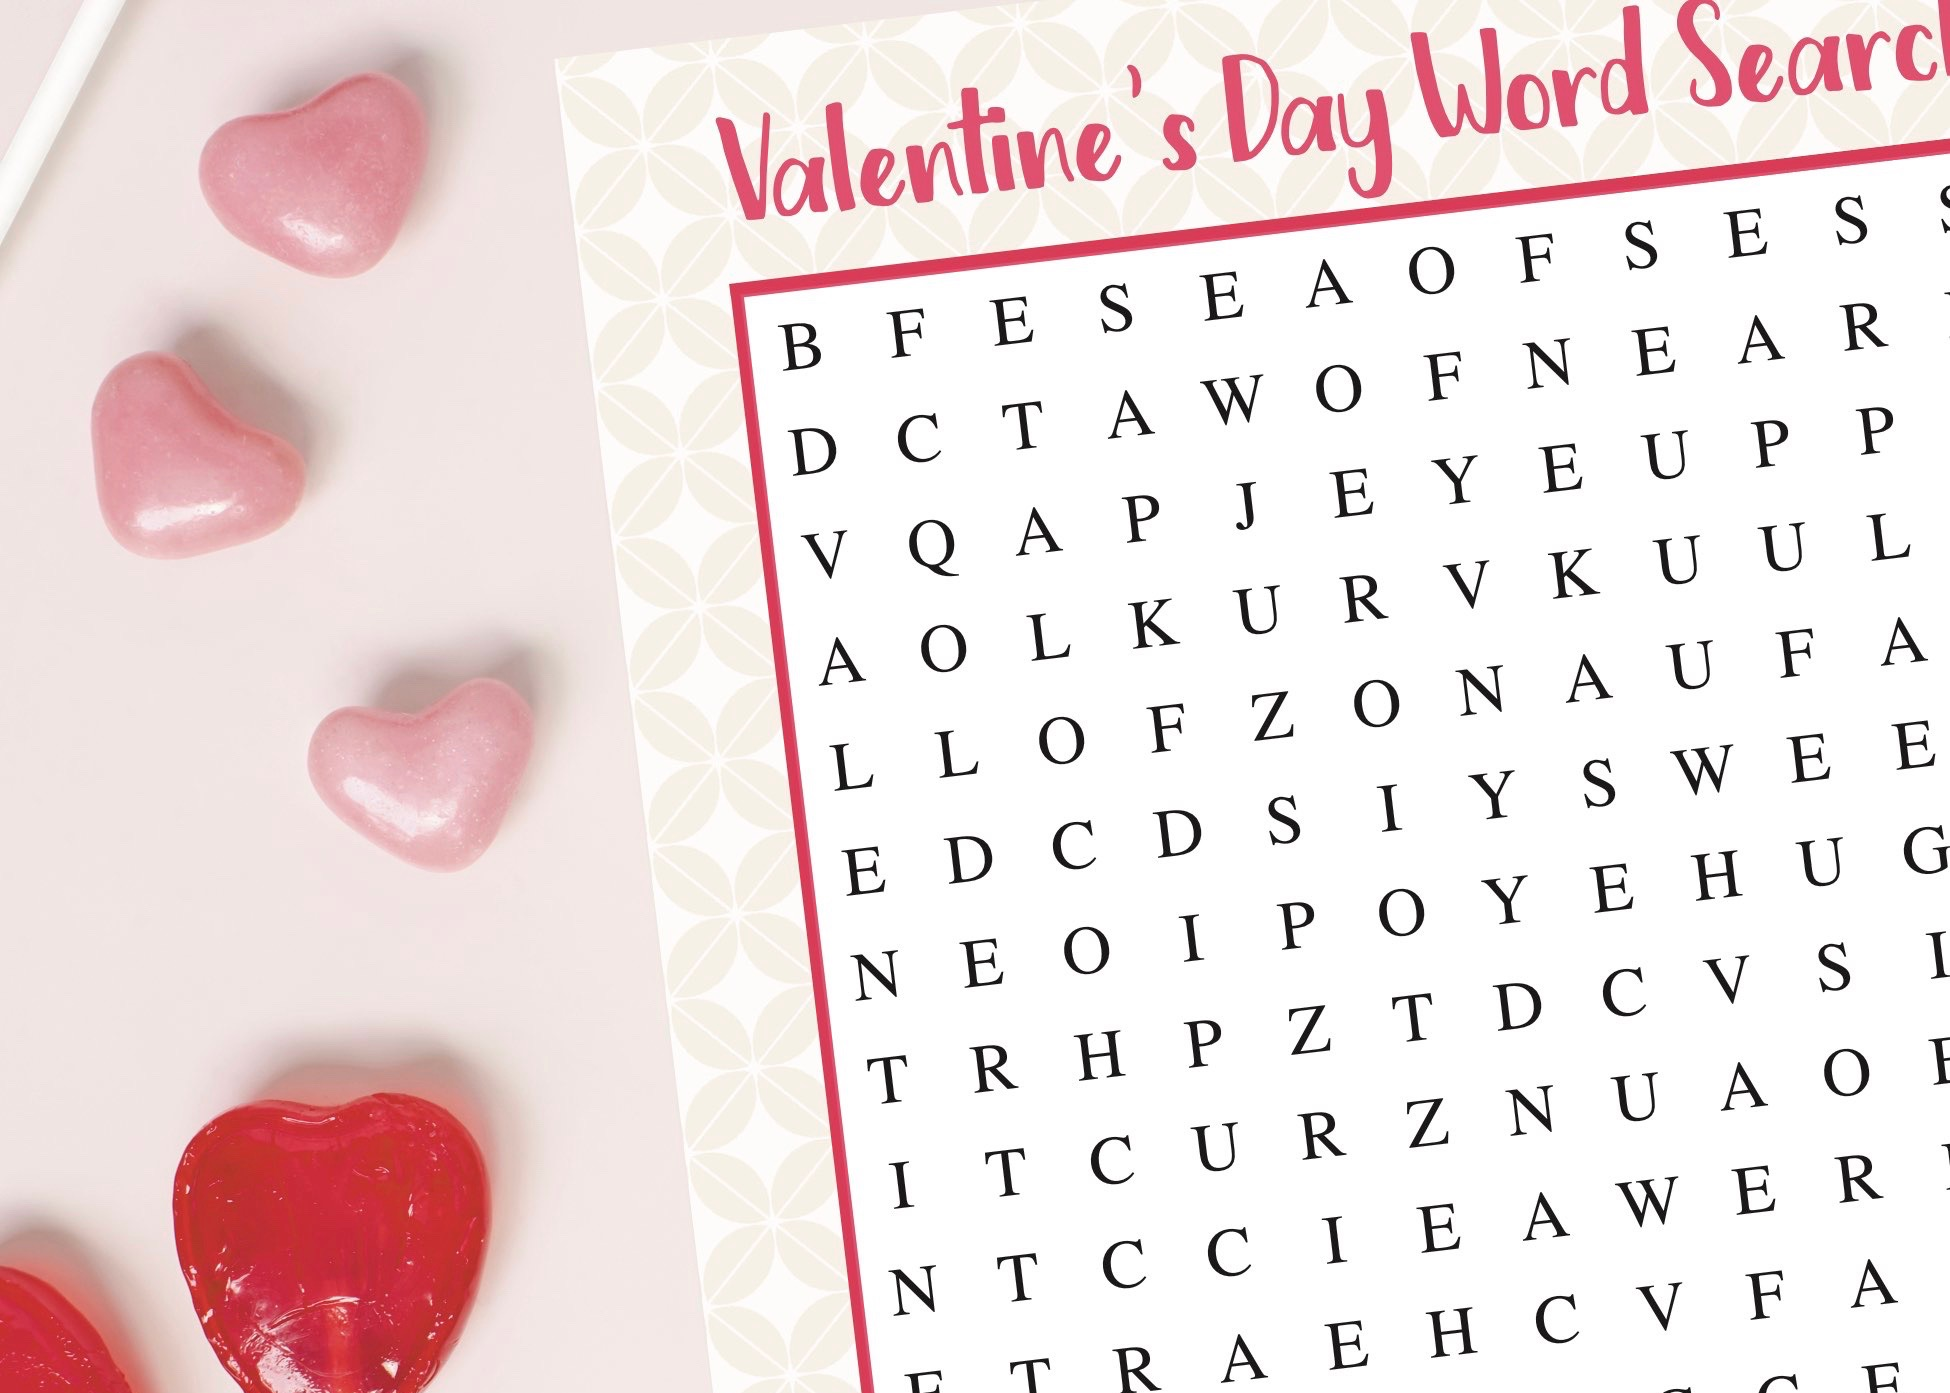 picture about Valentine Word Searches Printable called Valentines Working day Phrase Look Printable - Each day Bash Journal